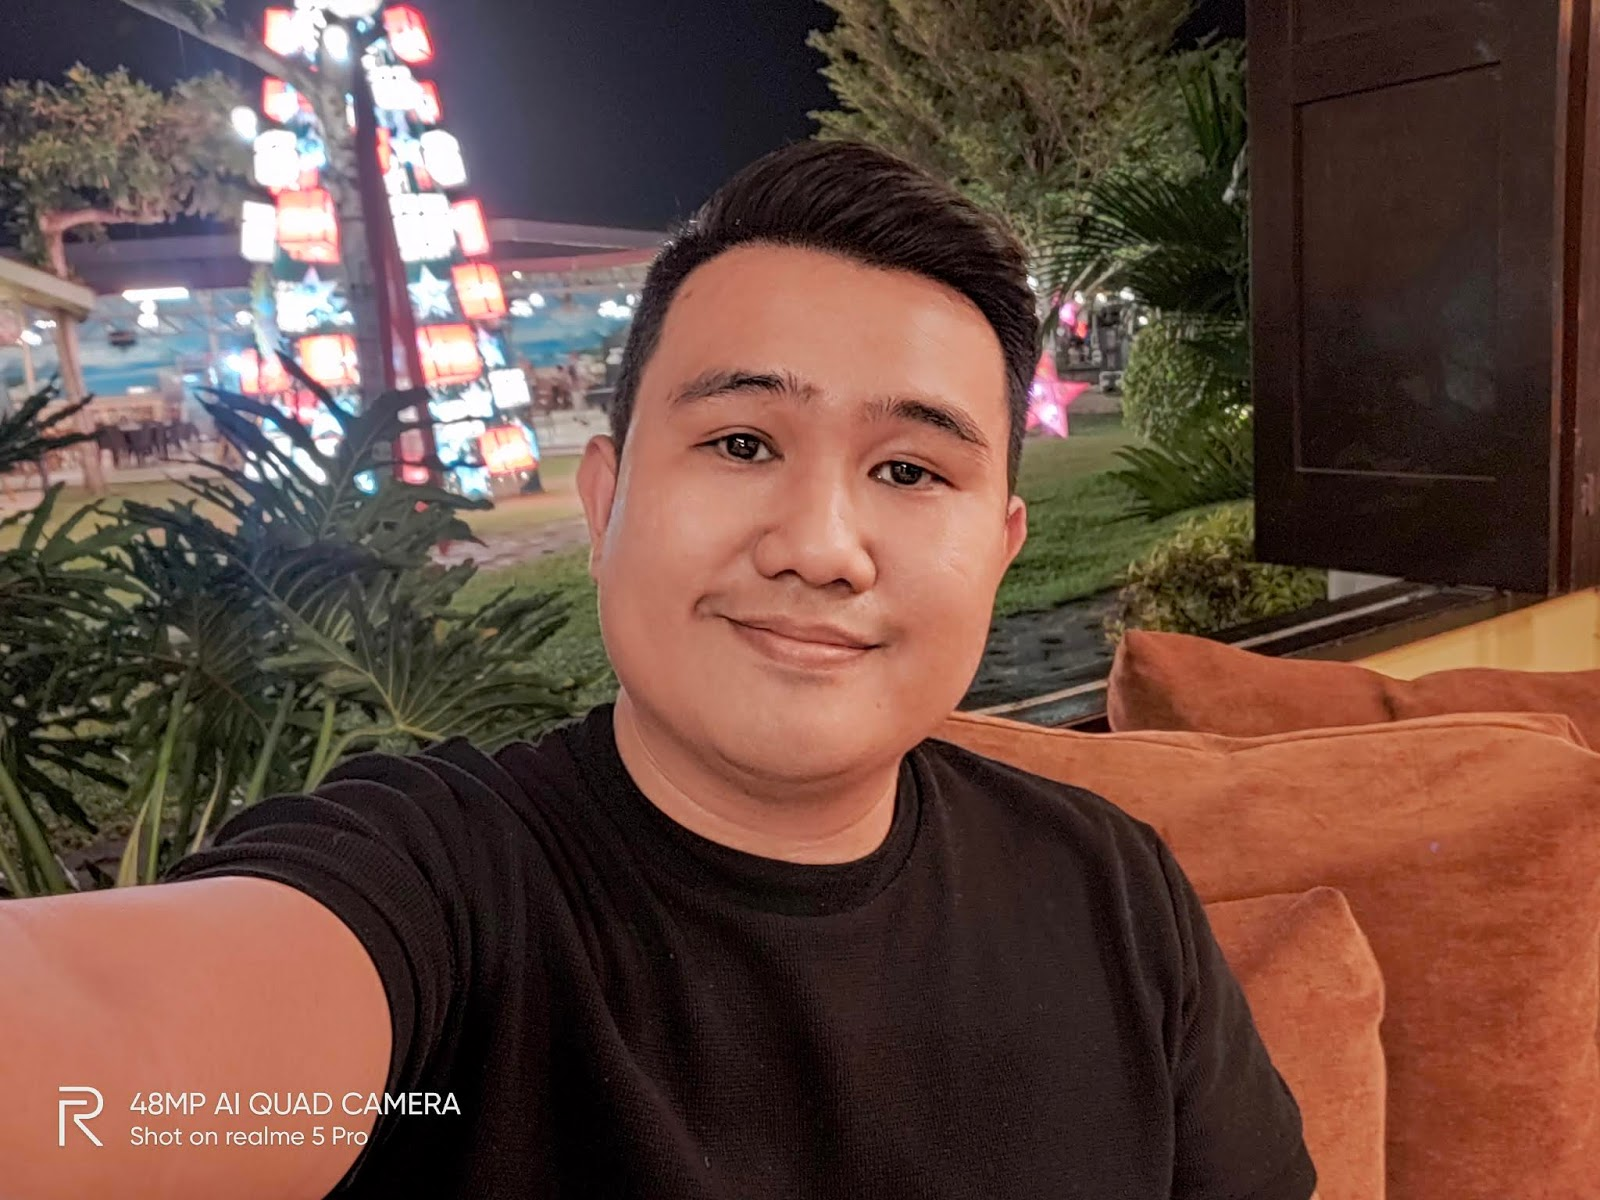 realme 5 PRO nightscapes selfie sample shot jexxhinggo.com